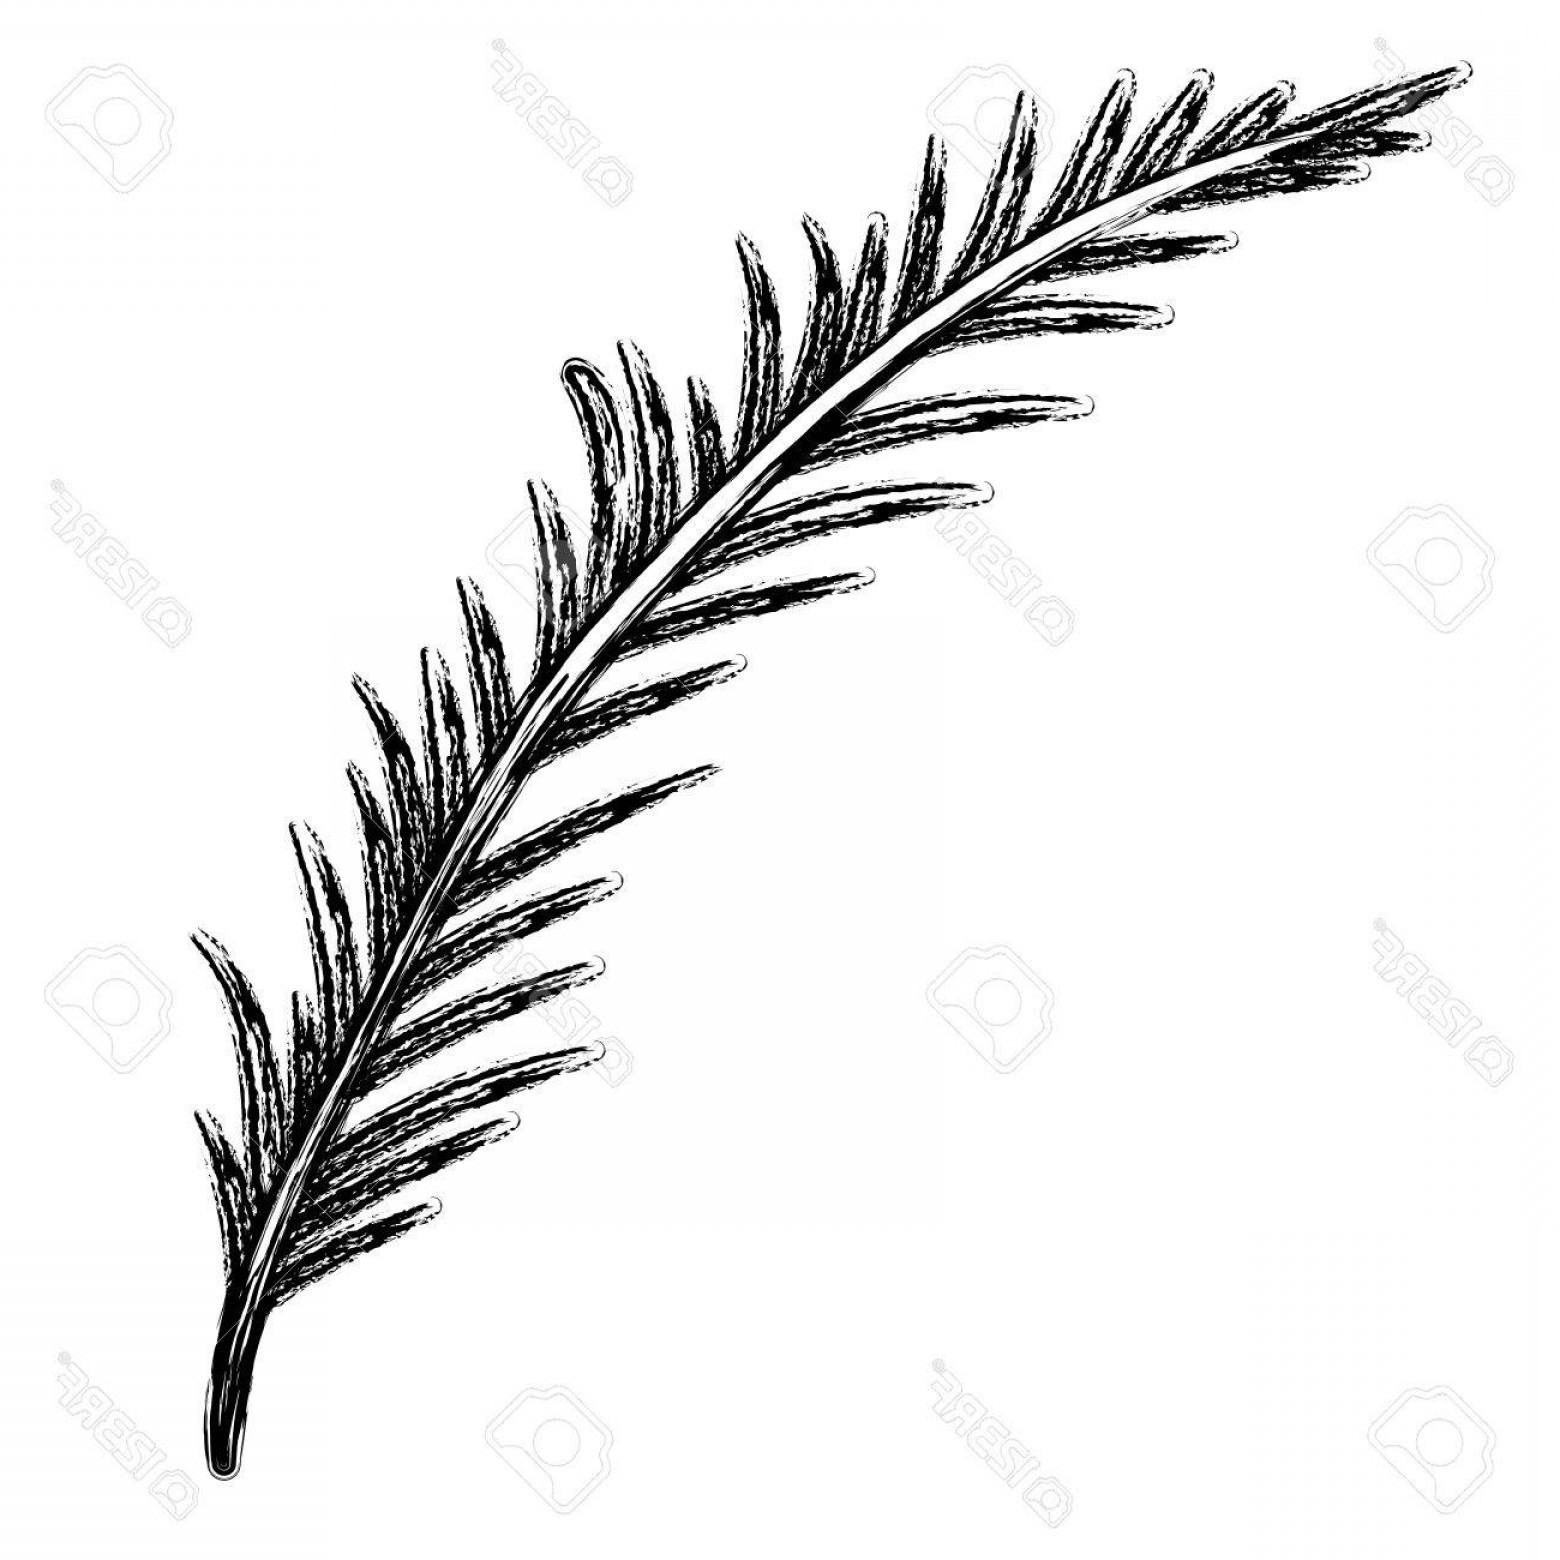 Pine Leaf Vector: Photostock Vector Monochrome Blurred Silhouette Of Branch With Linear Leaves Vector Illustration